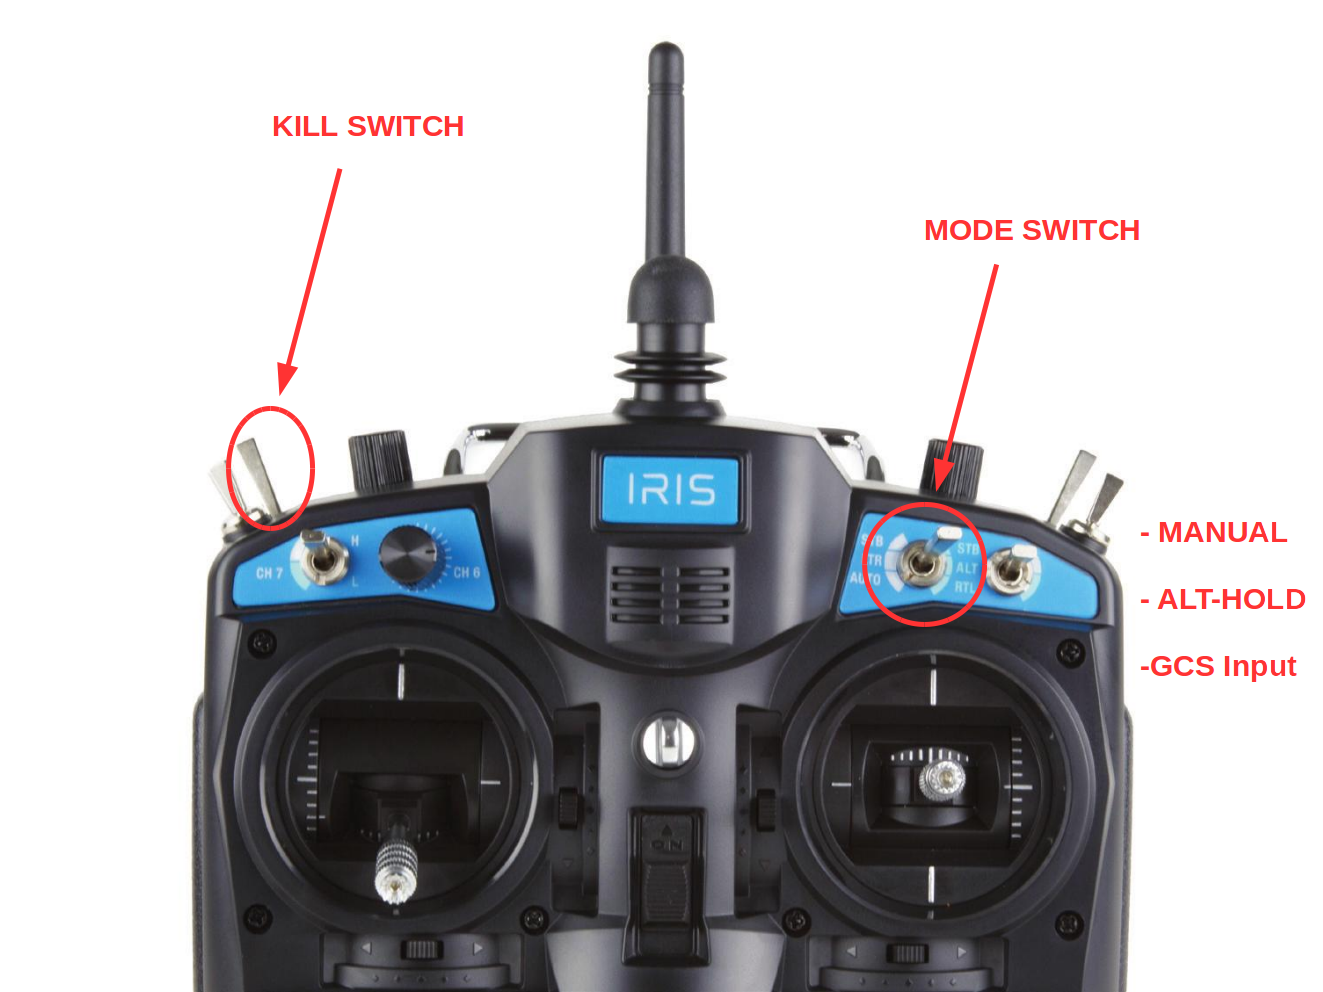 RC switches